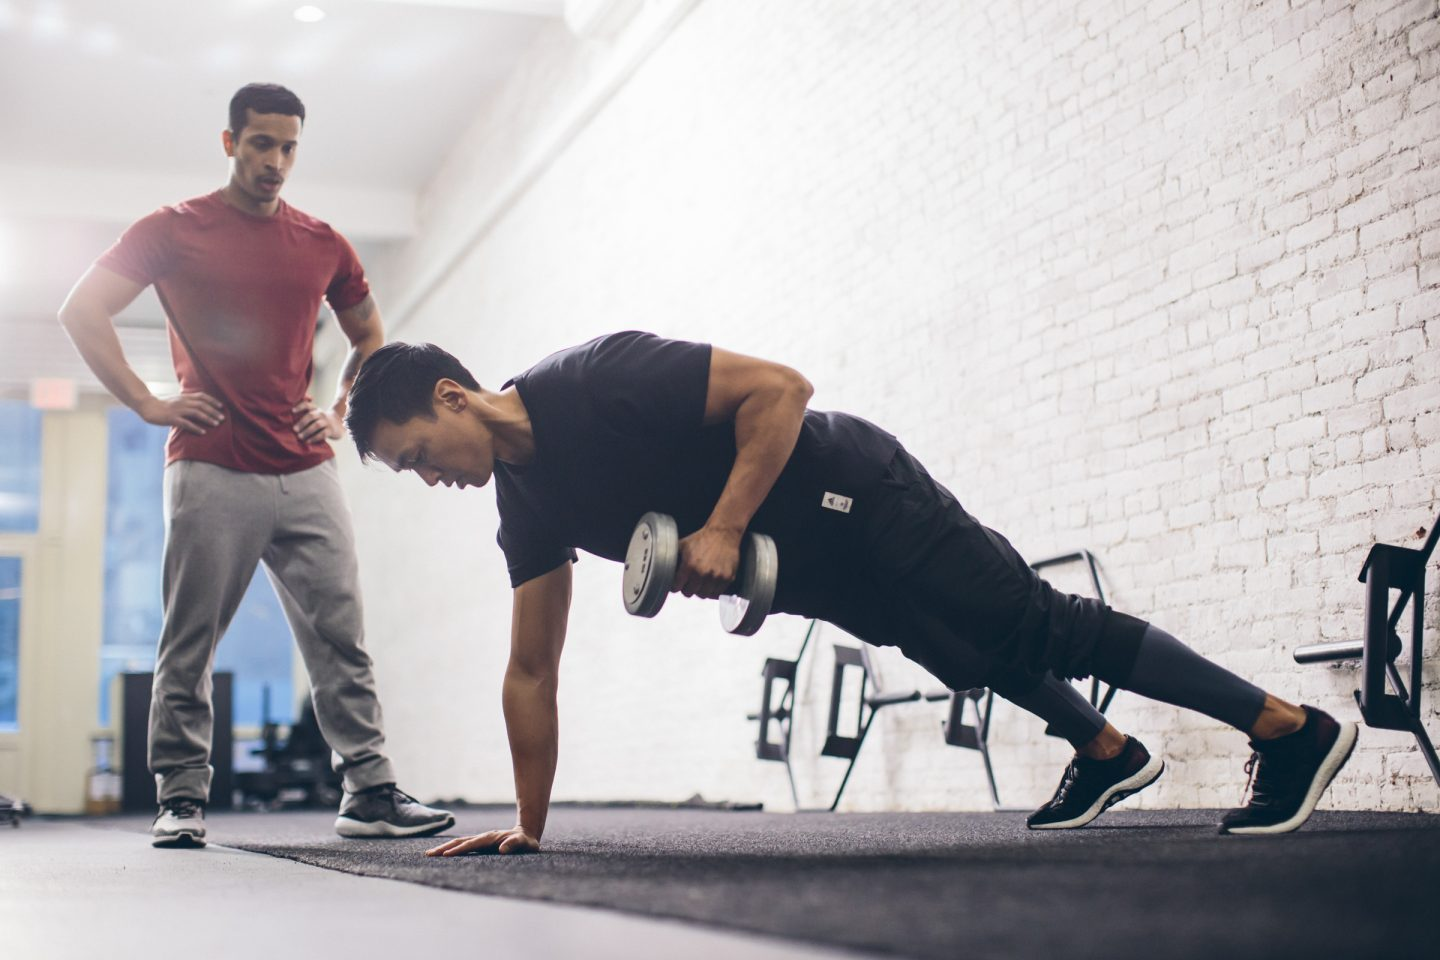 Two men working out in the gym with dumbbell. adidas partner workout rowing with dumbbell, future trends, digital, health, well-being, fitness